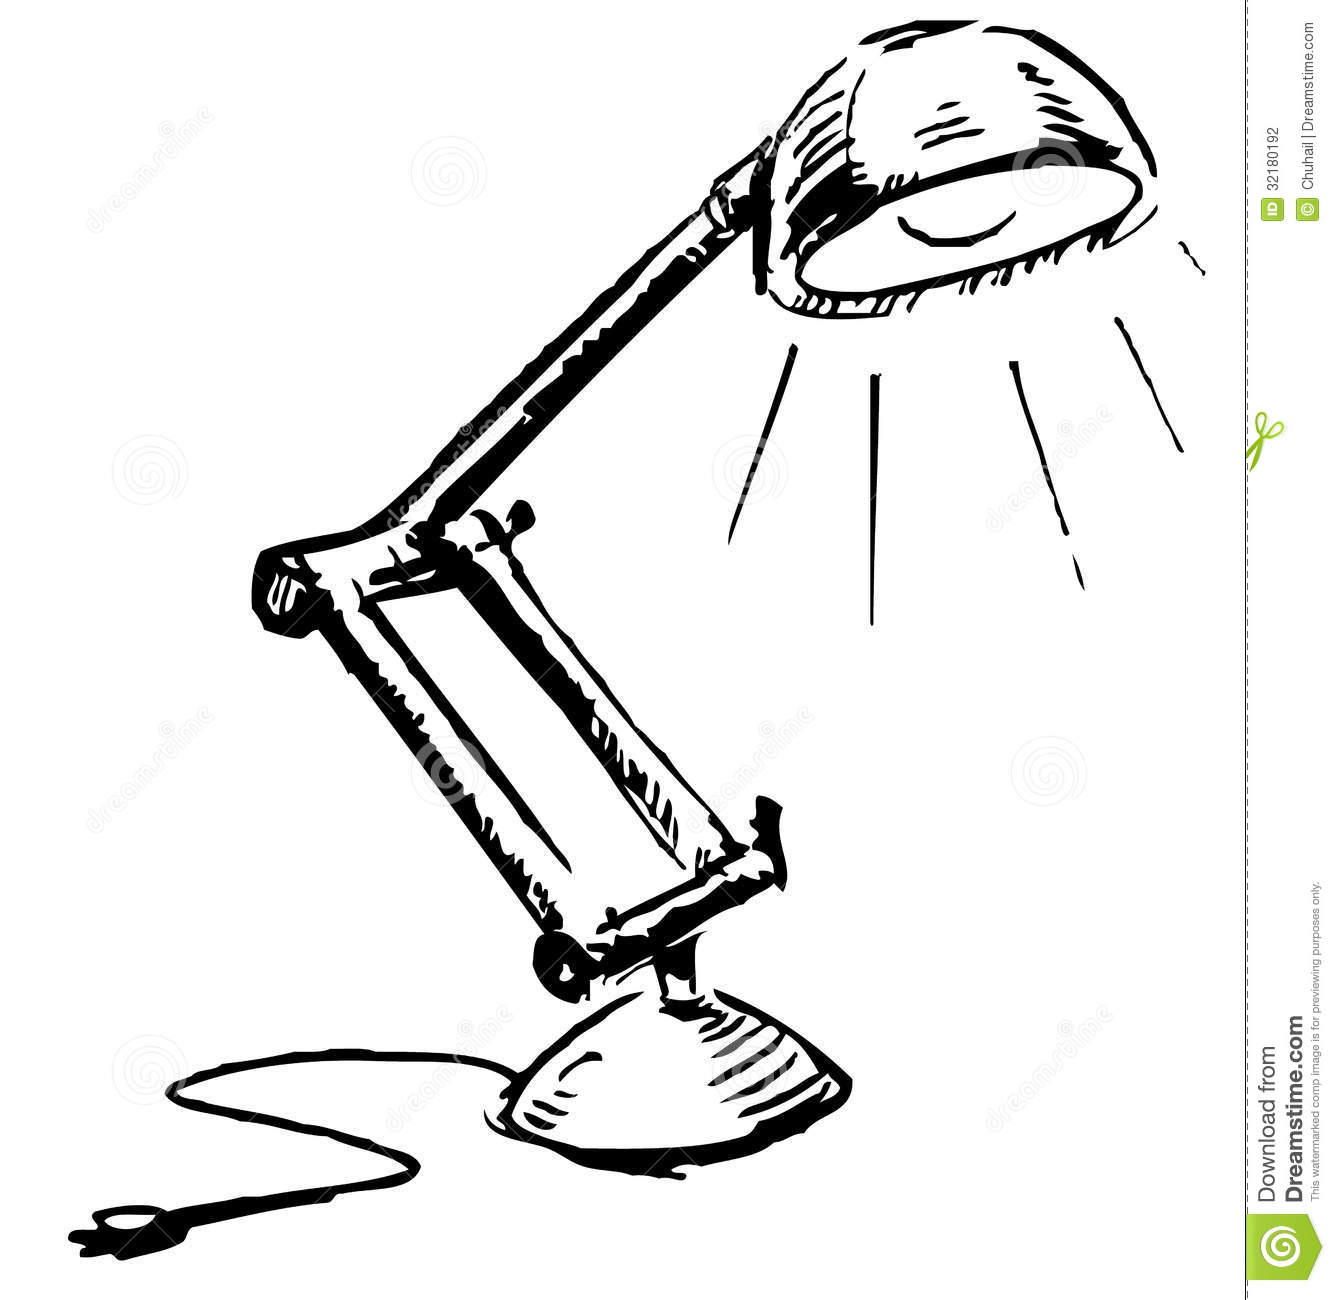 Table Lamp Clipart Black And White ~ Best Inspiration for Table Lamp for Study Lamp Clipart  585hul